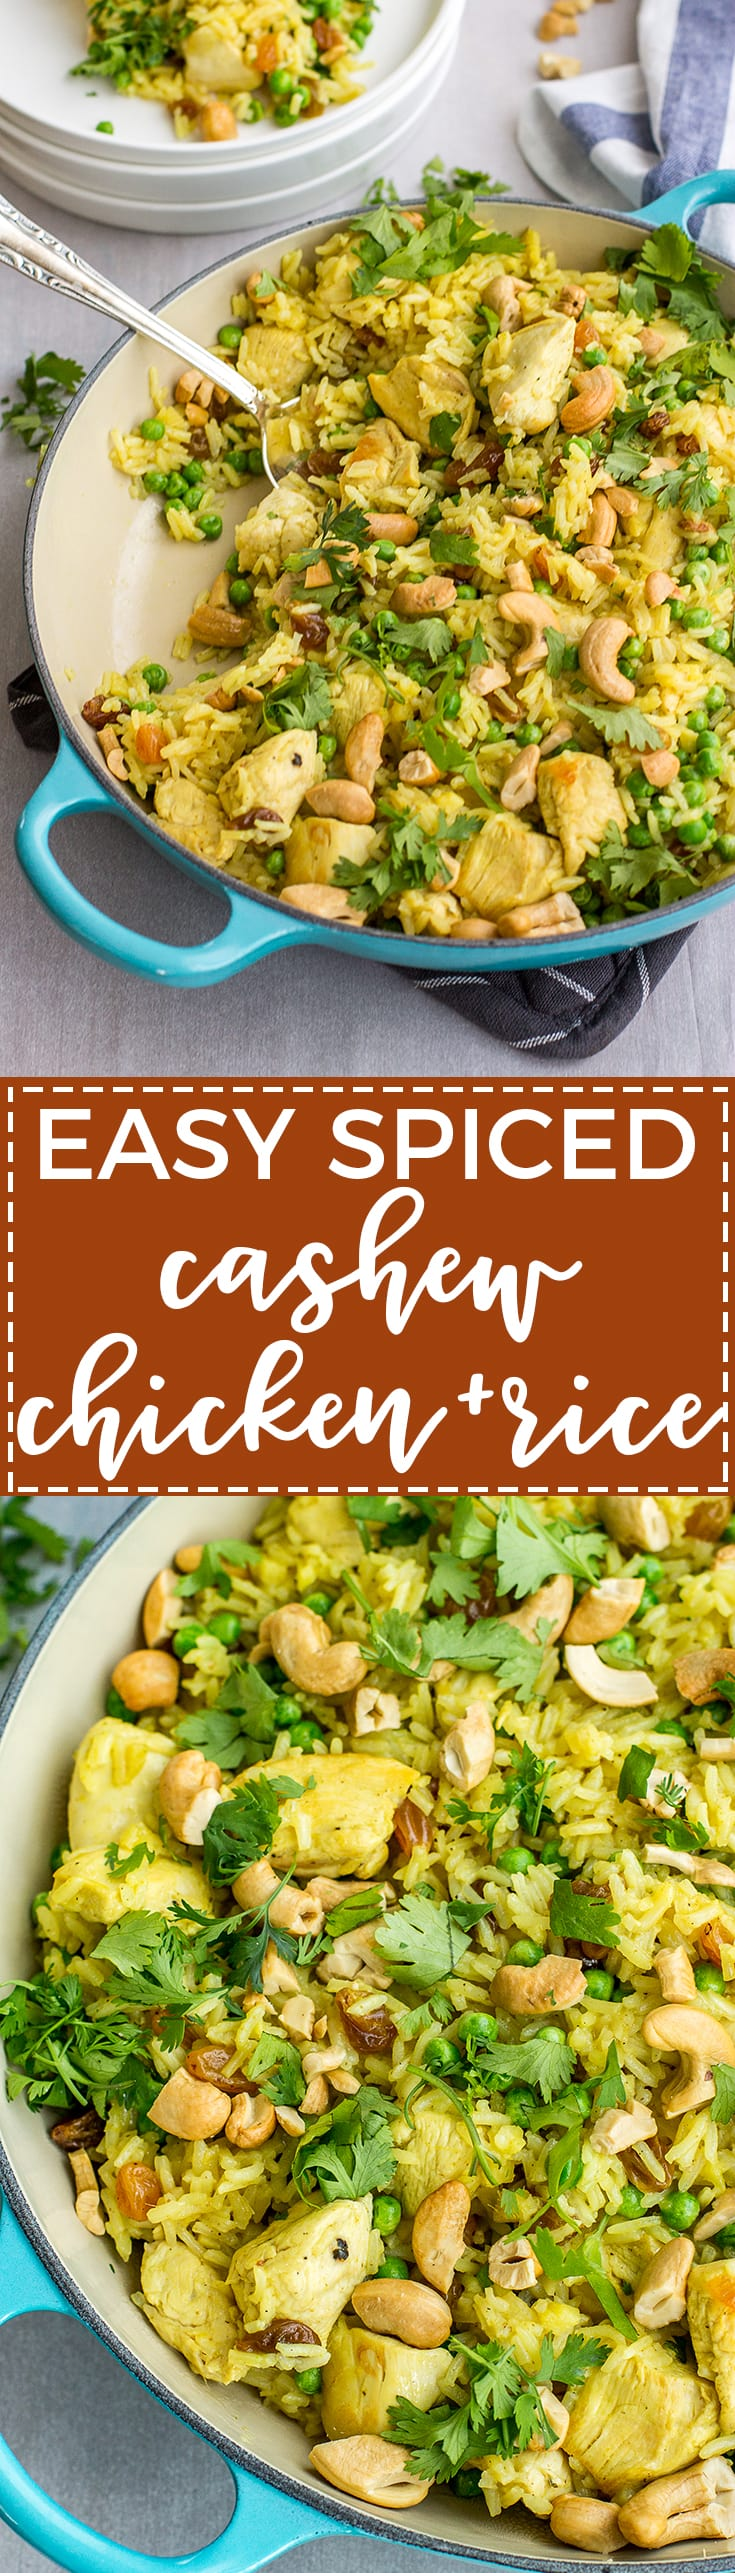 Easy spiced cashew chicken and rice - a quick, delicious one-pot weeknight dinner kicked up with curry, cilantro, and fresh ginger.